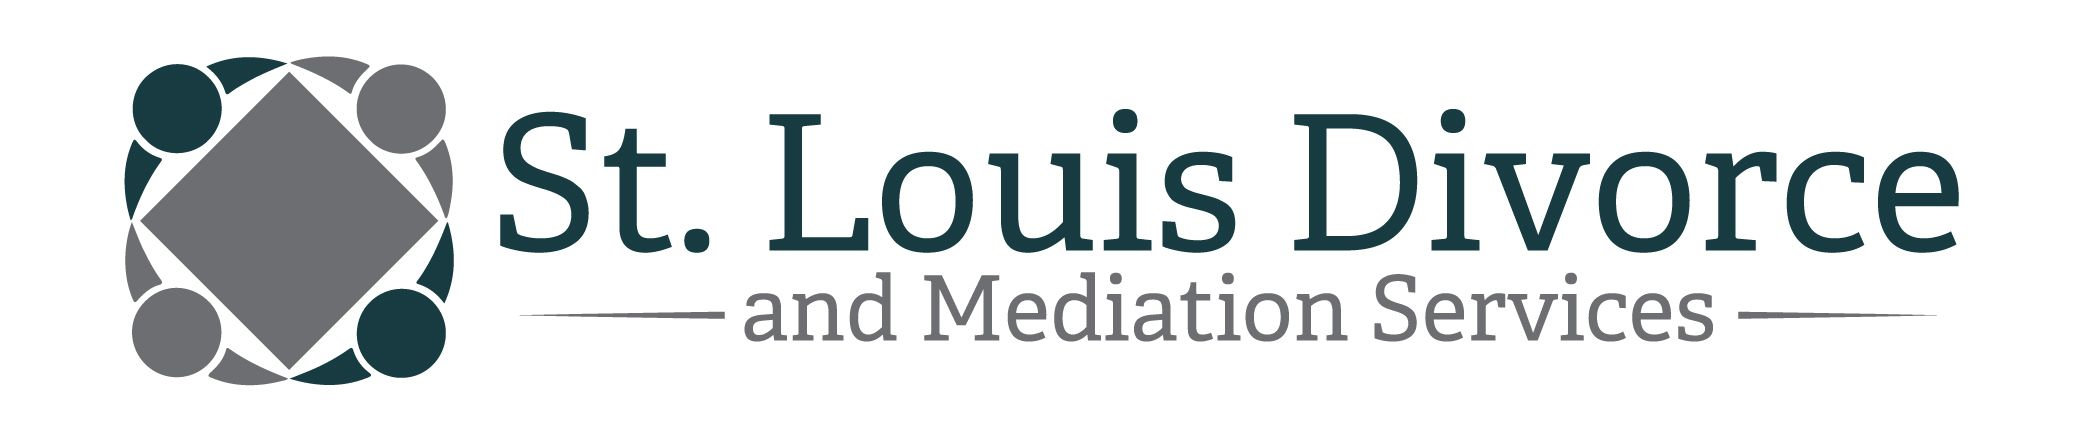 stlouisdivorce Logo